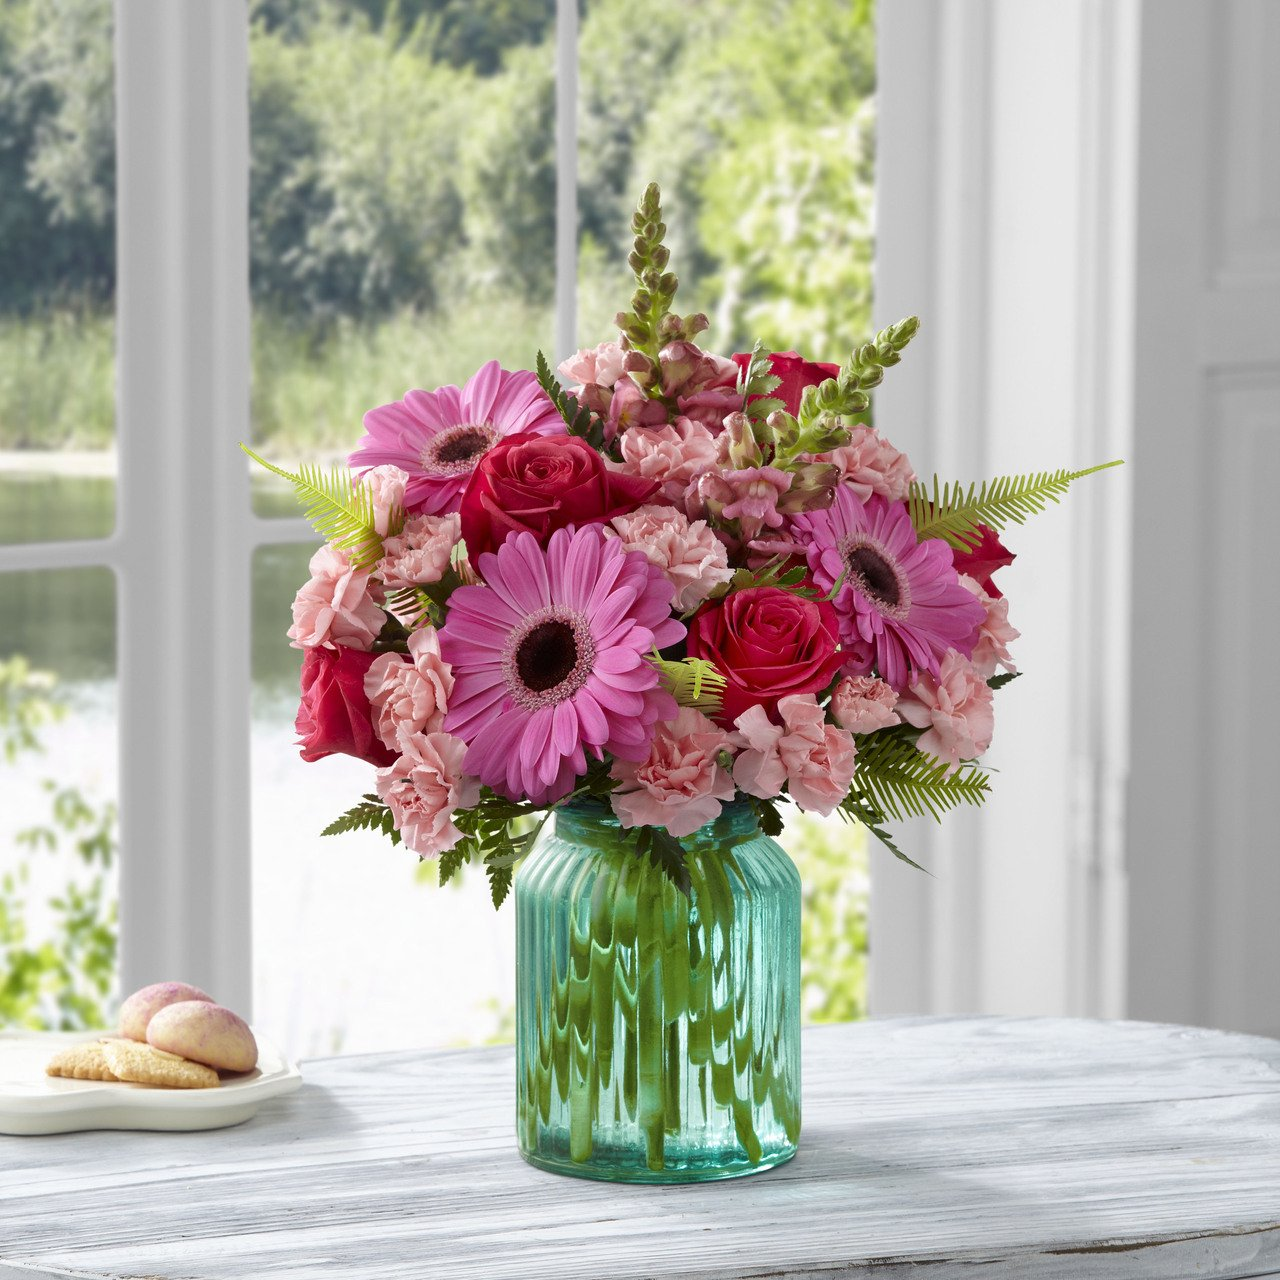 Gifts from Garden Bouquet by Better Homes and Gardens - Fresh Flowers Hand Delivered in Albuquerque Area